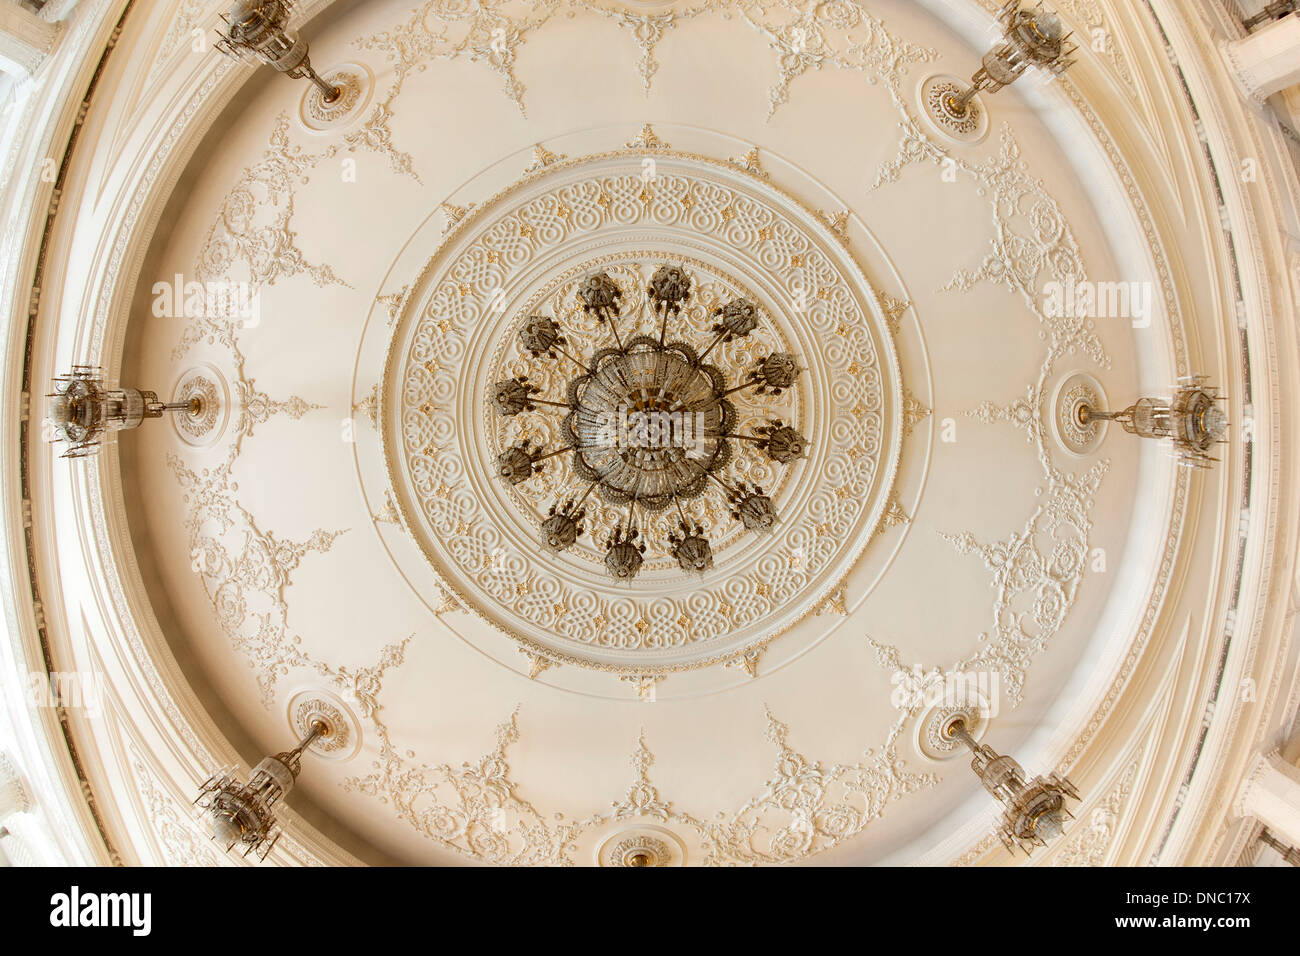 Ceiling and chandelier in one of the rooms of the Palace of the Parliament in Bucharest, the capital of Romania. - Stock Image